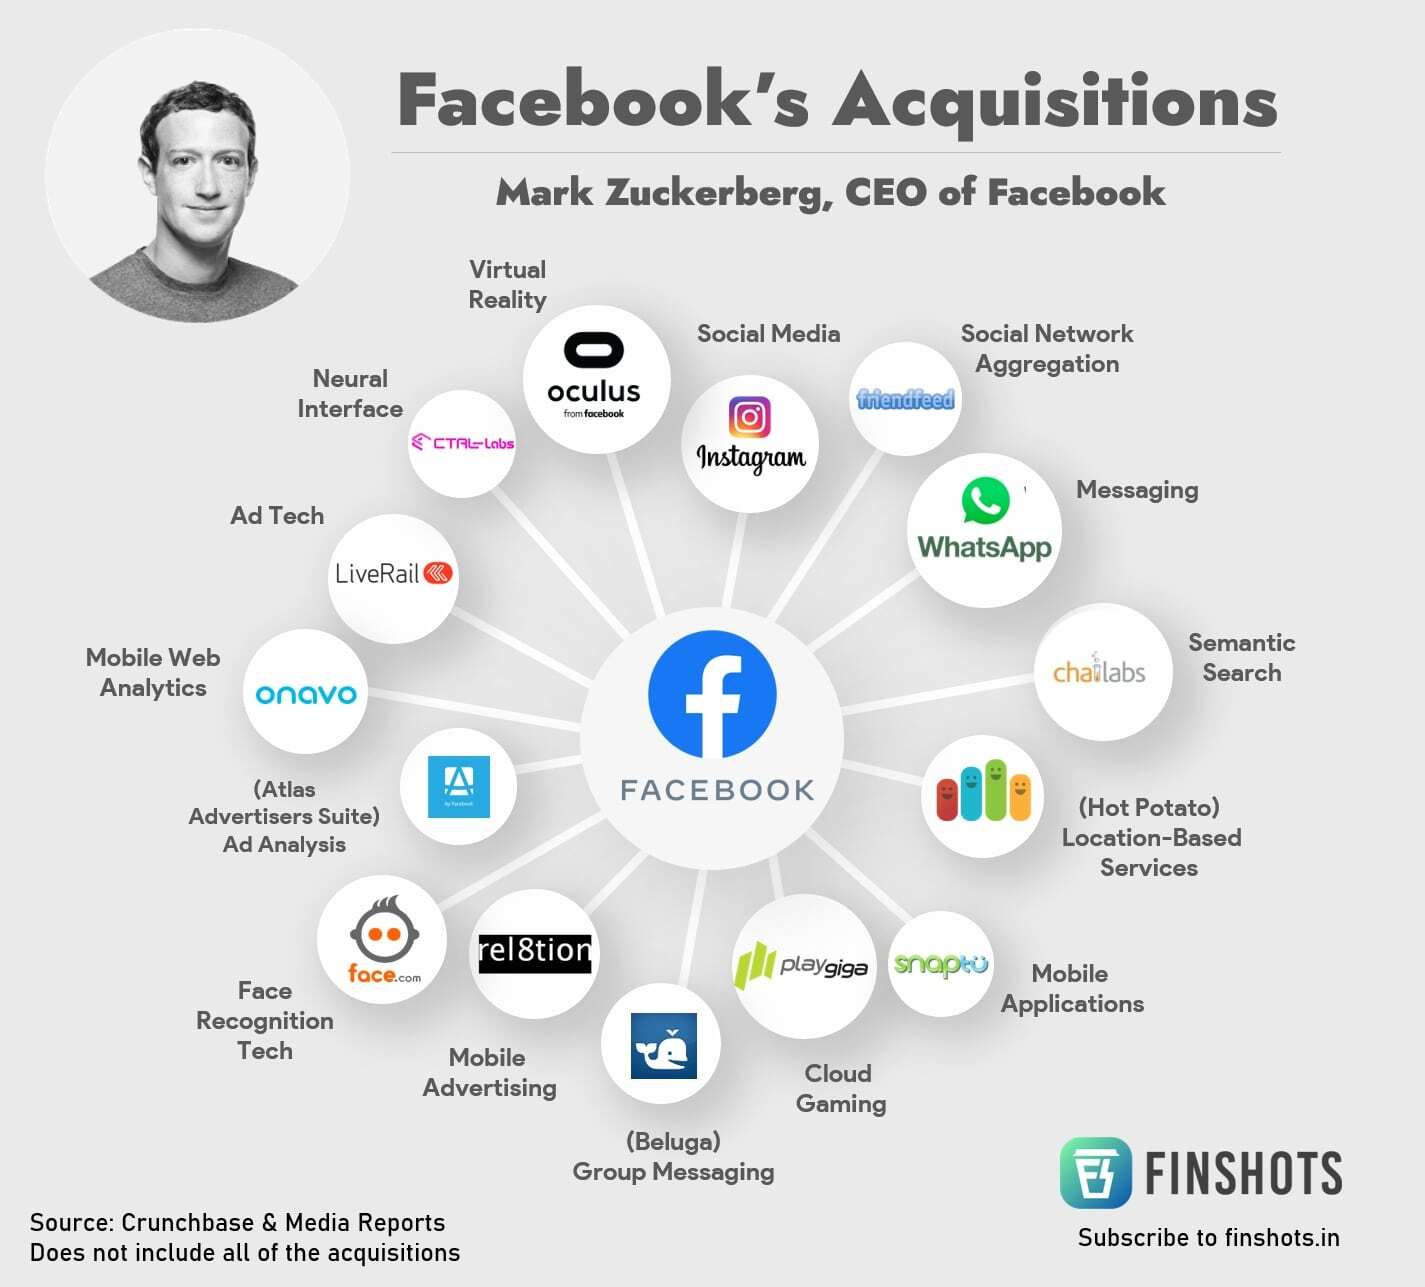 Facebook's Acquisitions